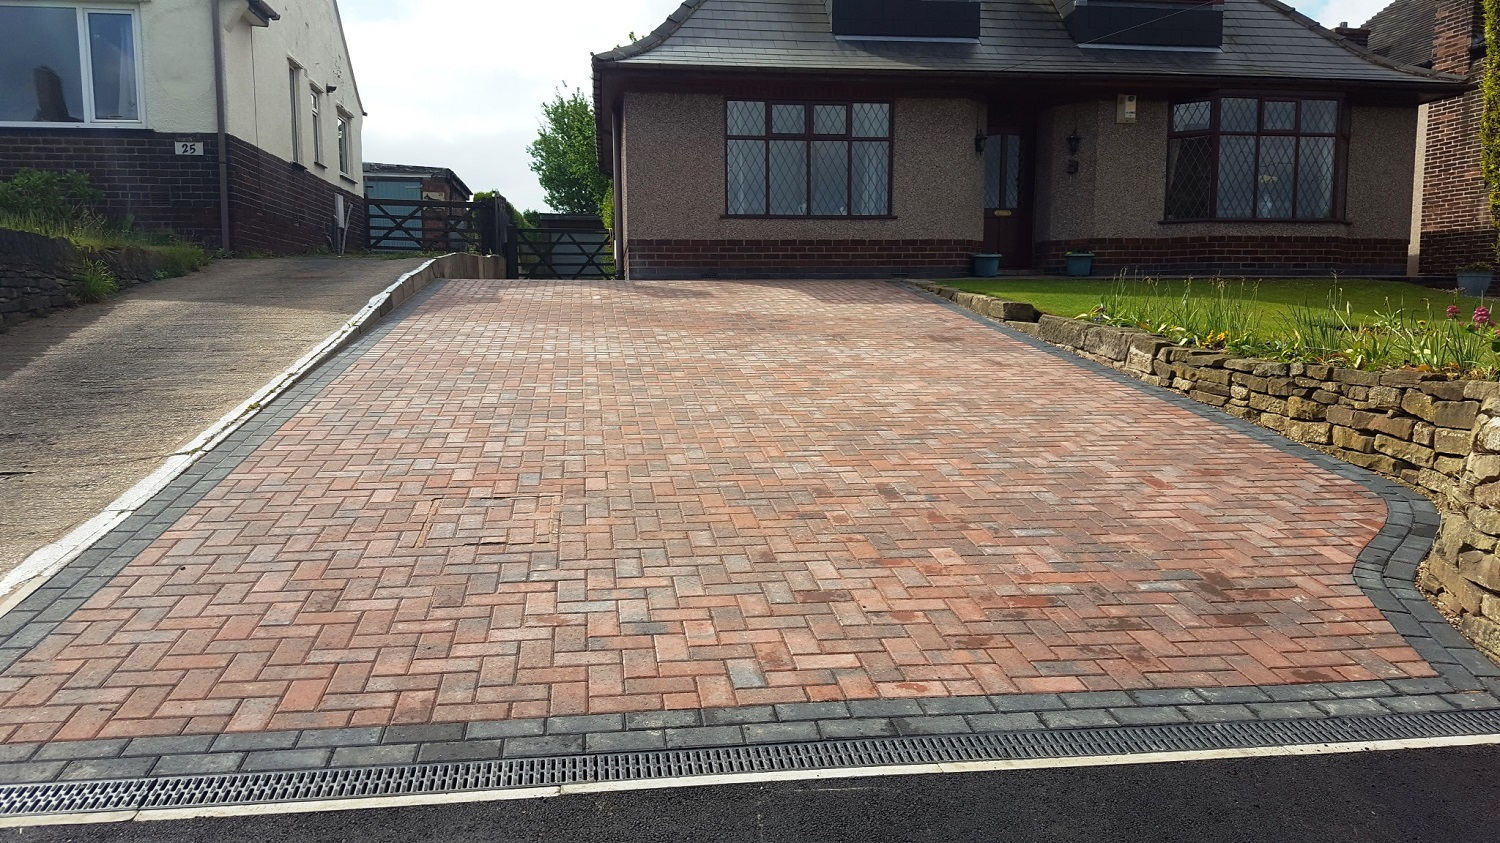 C6 Plaspave Brindle Block Paving Driveway at Brimington in Chesterfield